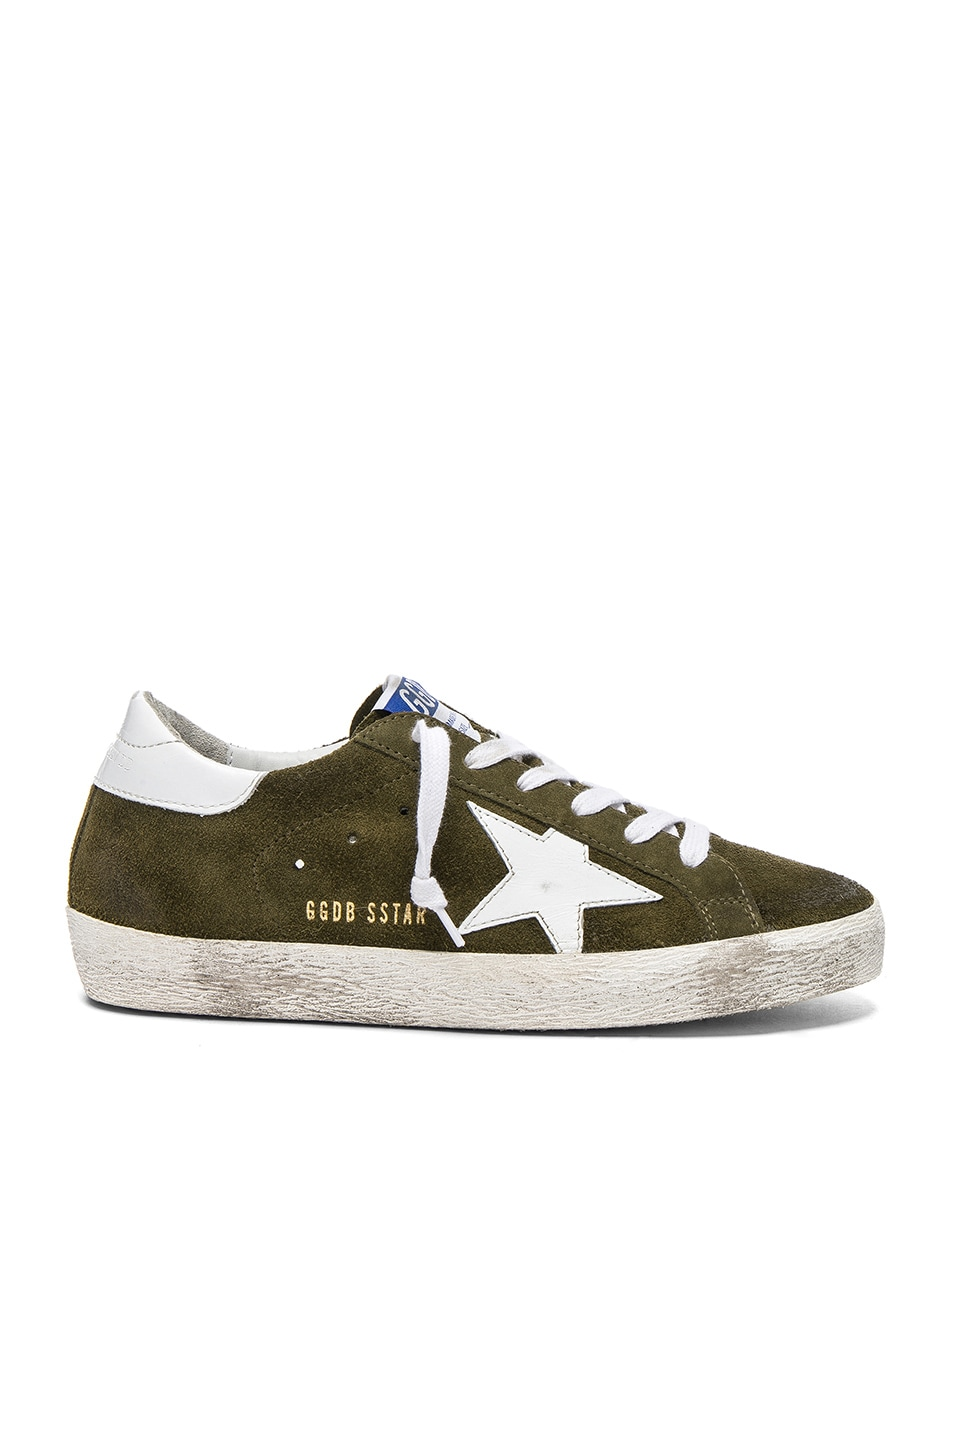 Image 1 of Golden Goose Suede Superstar Low Sneakers in Olive Green & White